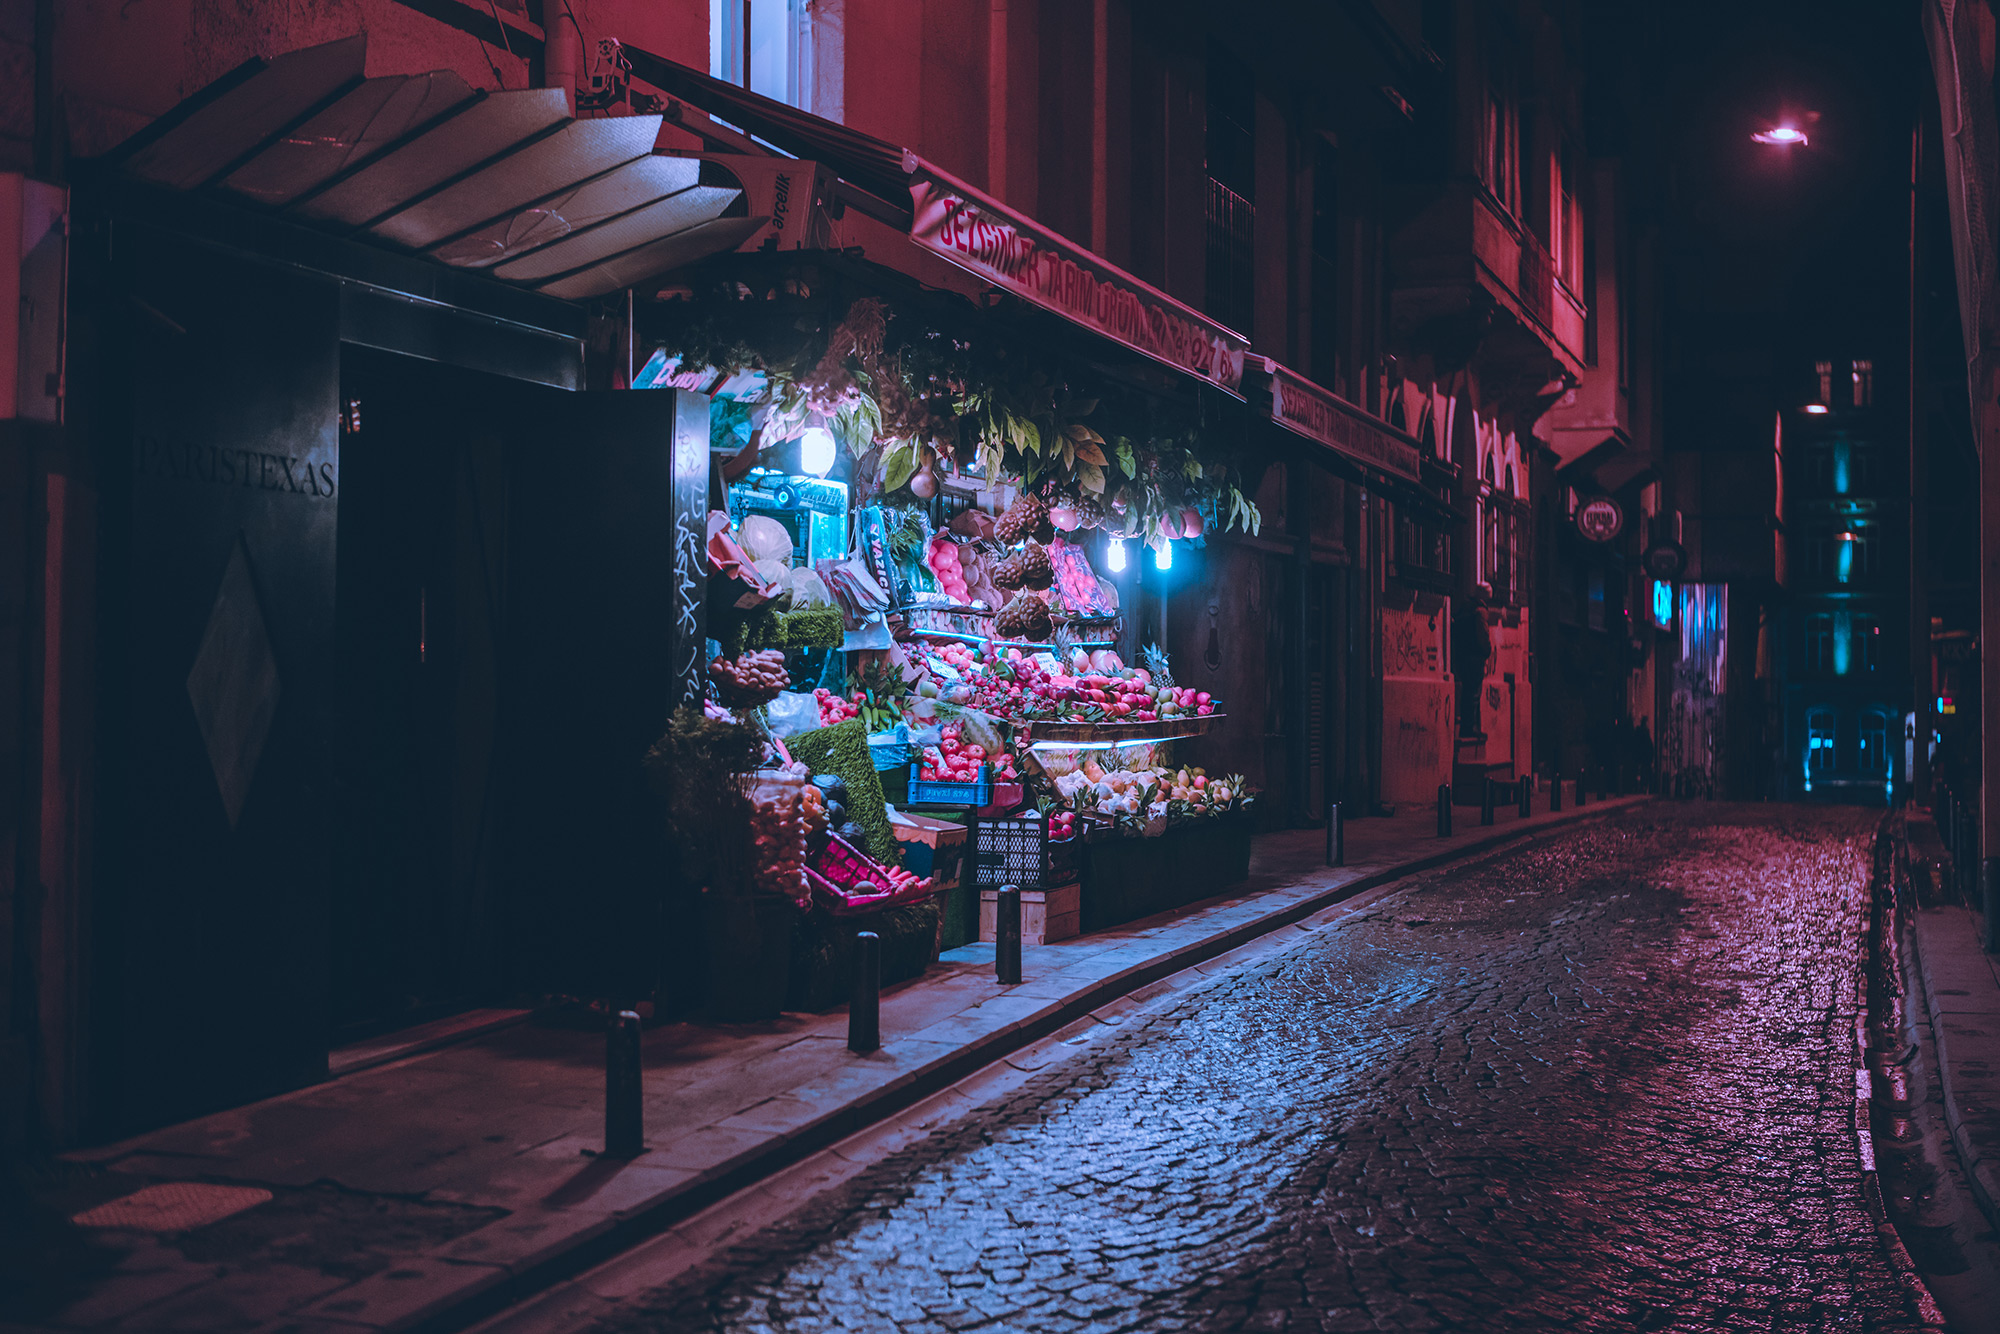 Nighttime City Scenes Bathed in Neon by Photographer Elsa Bleda